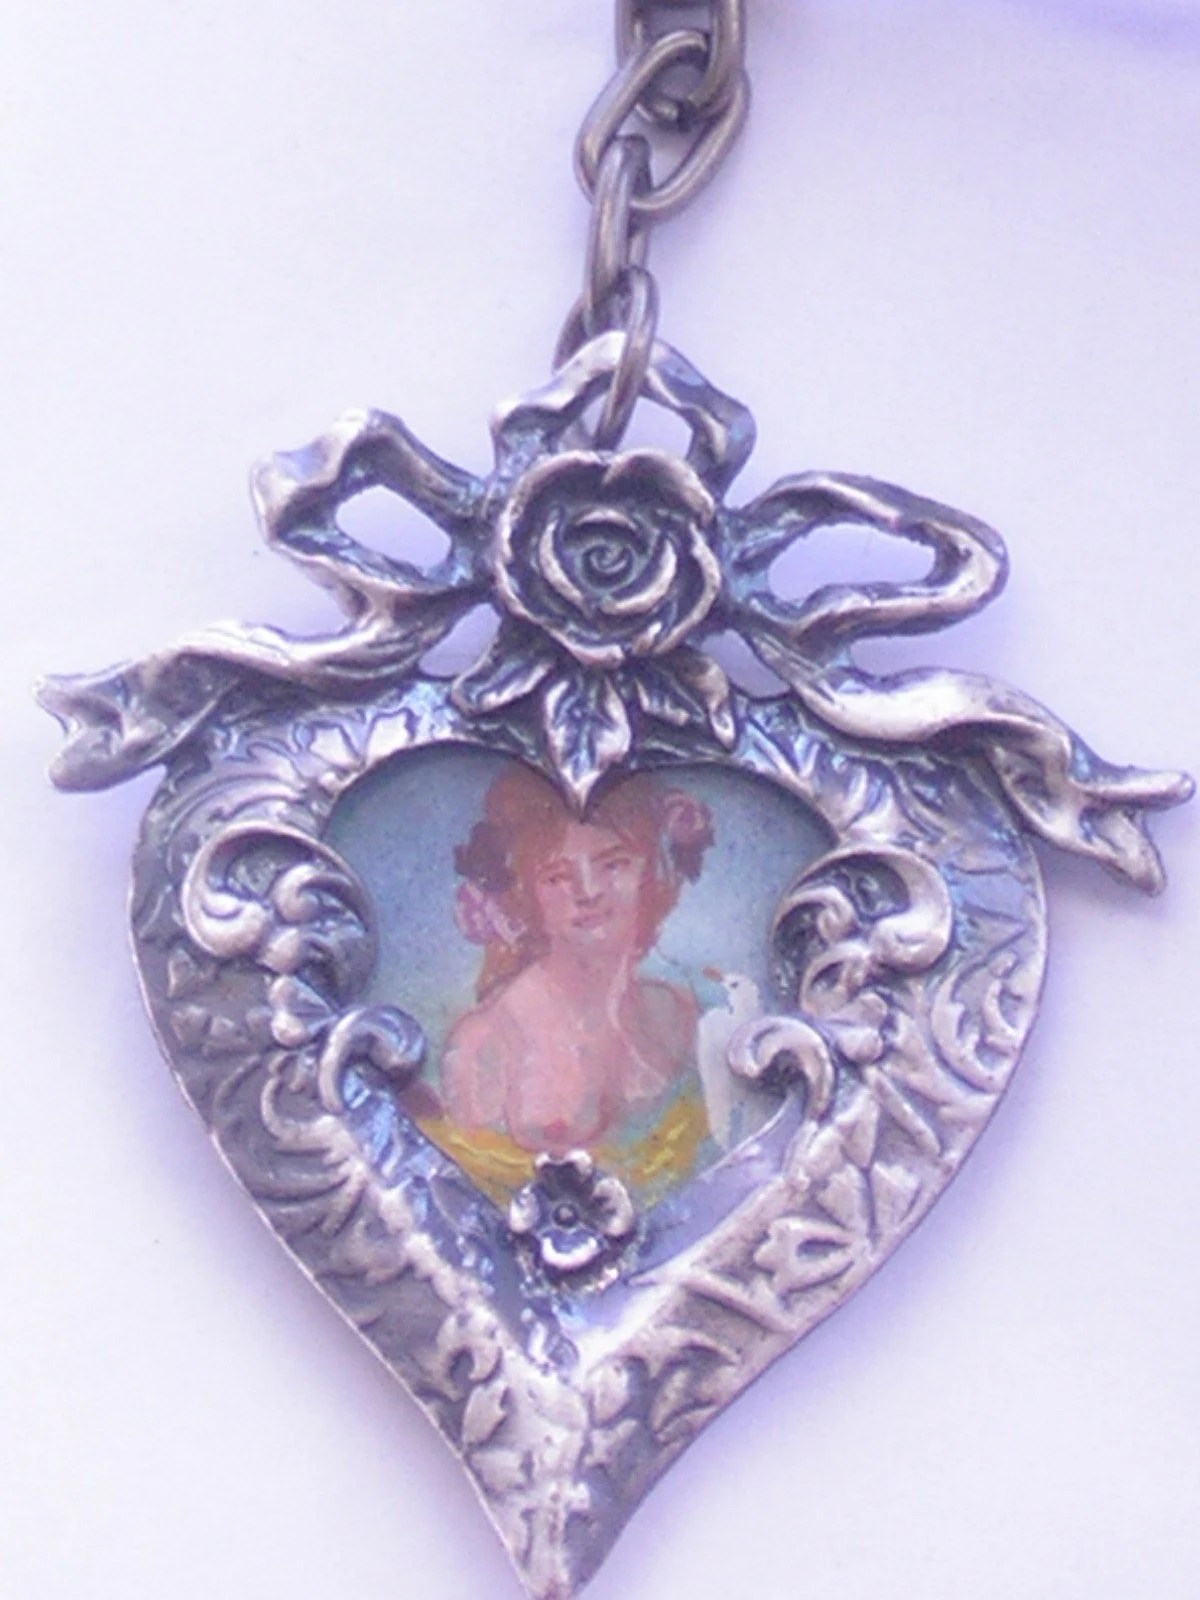 Hand-Painted Love Goddess Pendant Brooch Keychain benefits Family Violence Prevention Fund